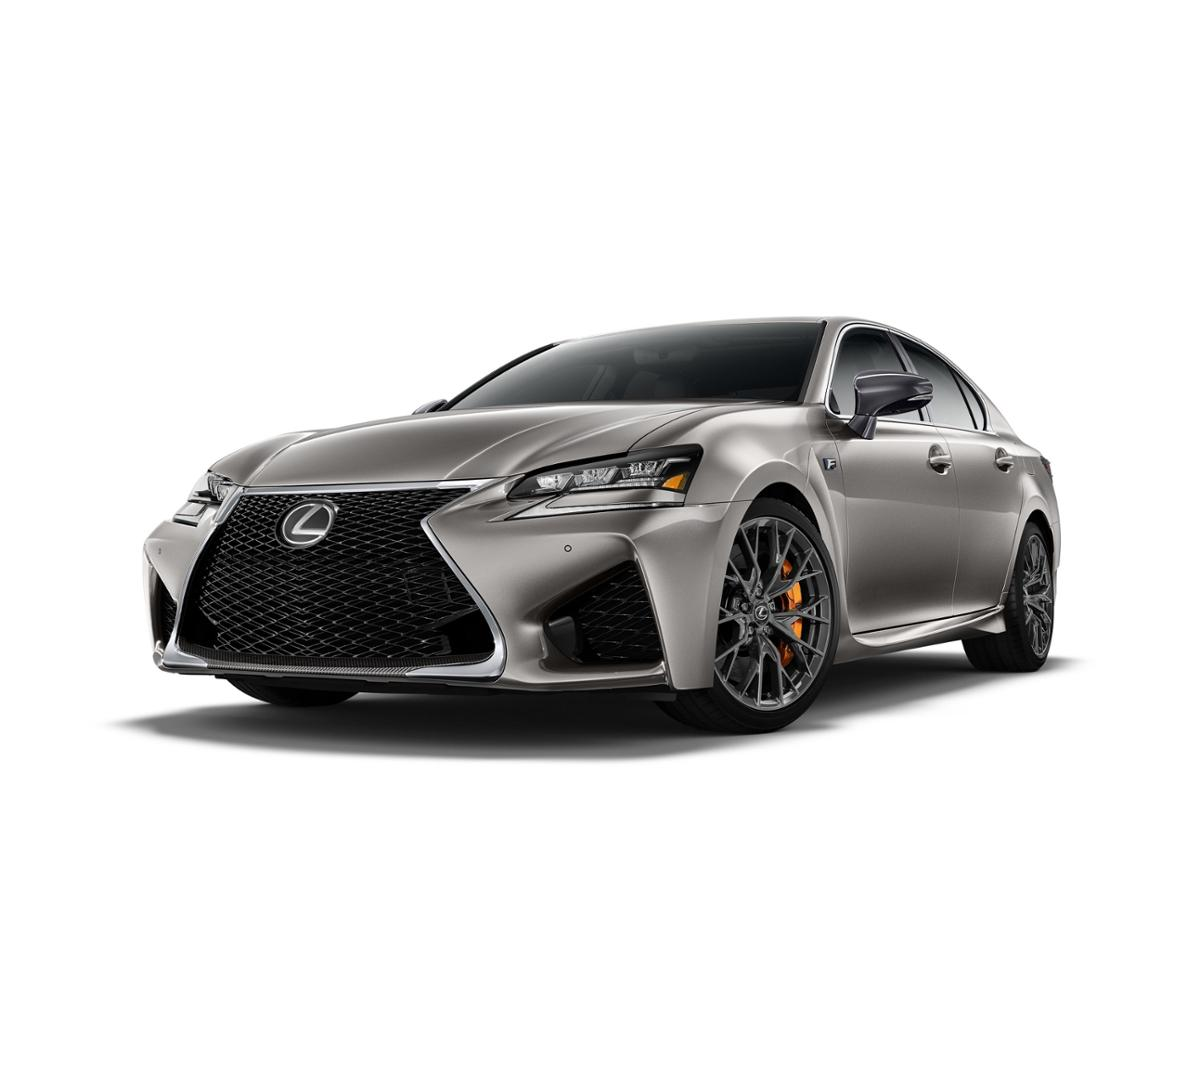 2017 Lexus GS F Vehicle Photo in Fort Worth, TX 76132